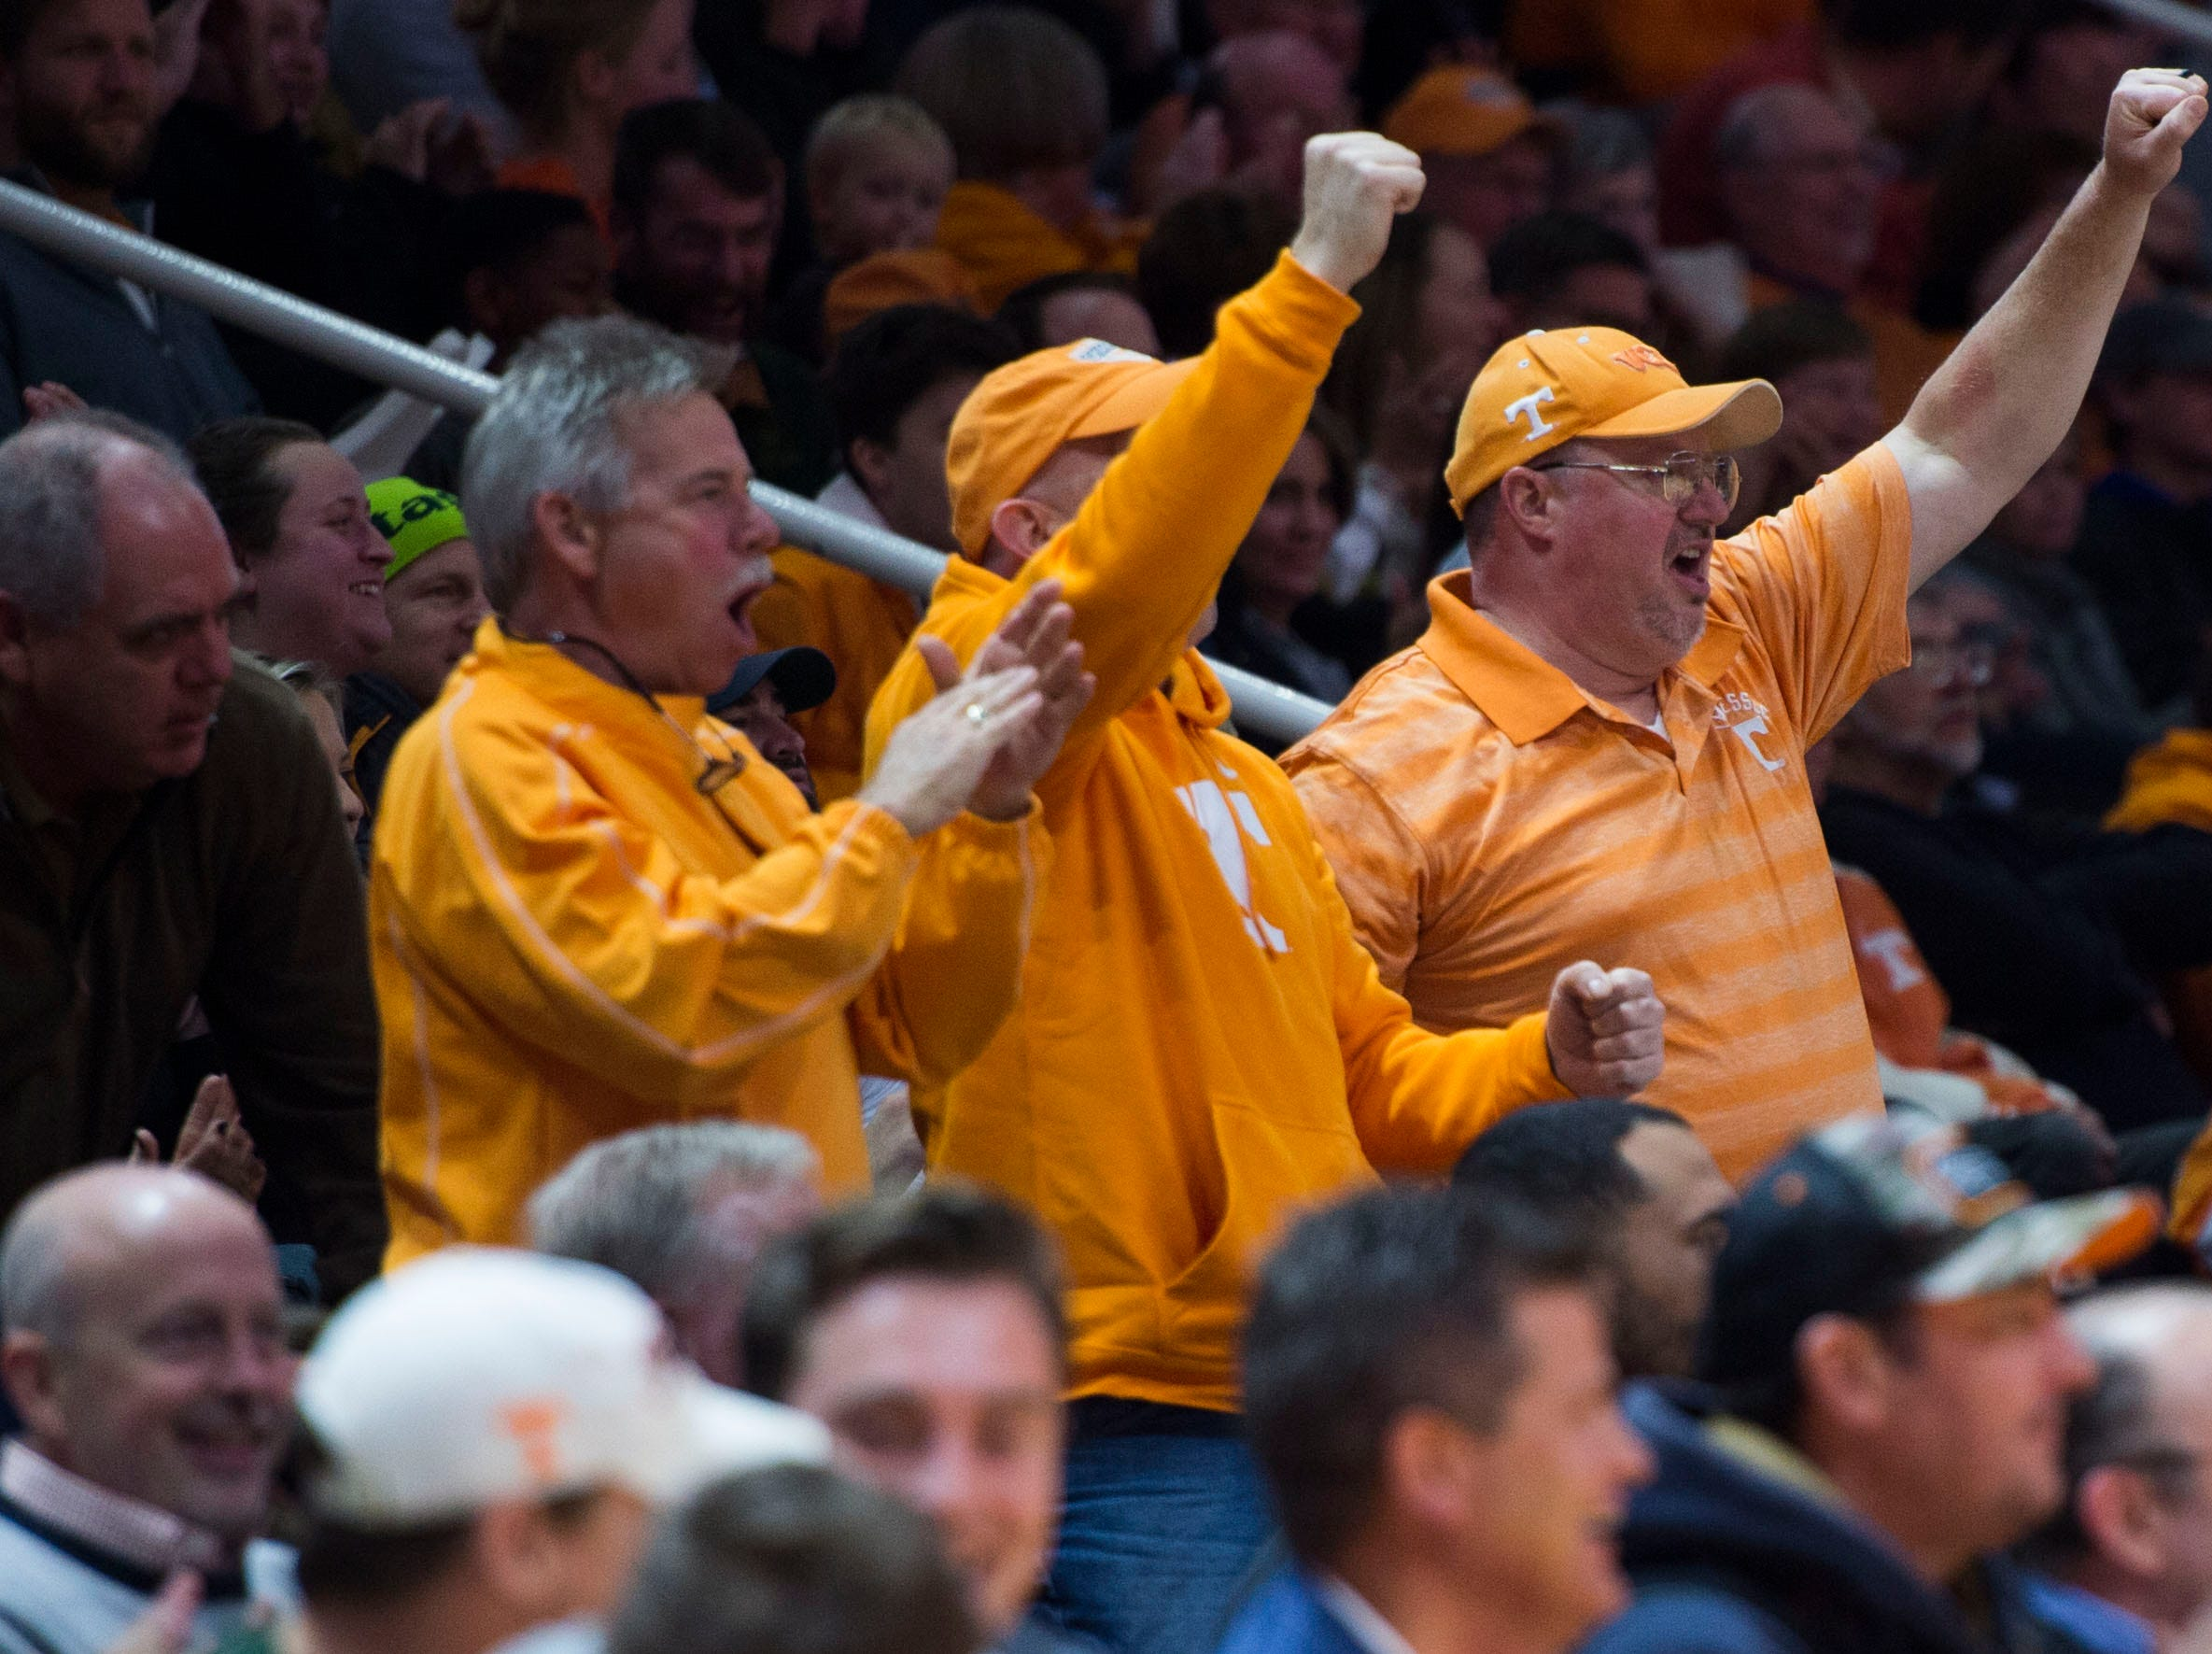 Fans cheer after a dunked ball during the first half of a NCAA men's basketball game between Tennessee and Eastern Kentucky University at Thompson-Boling Arena Wednesday, Nov. 28, 2018.